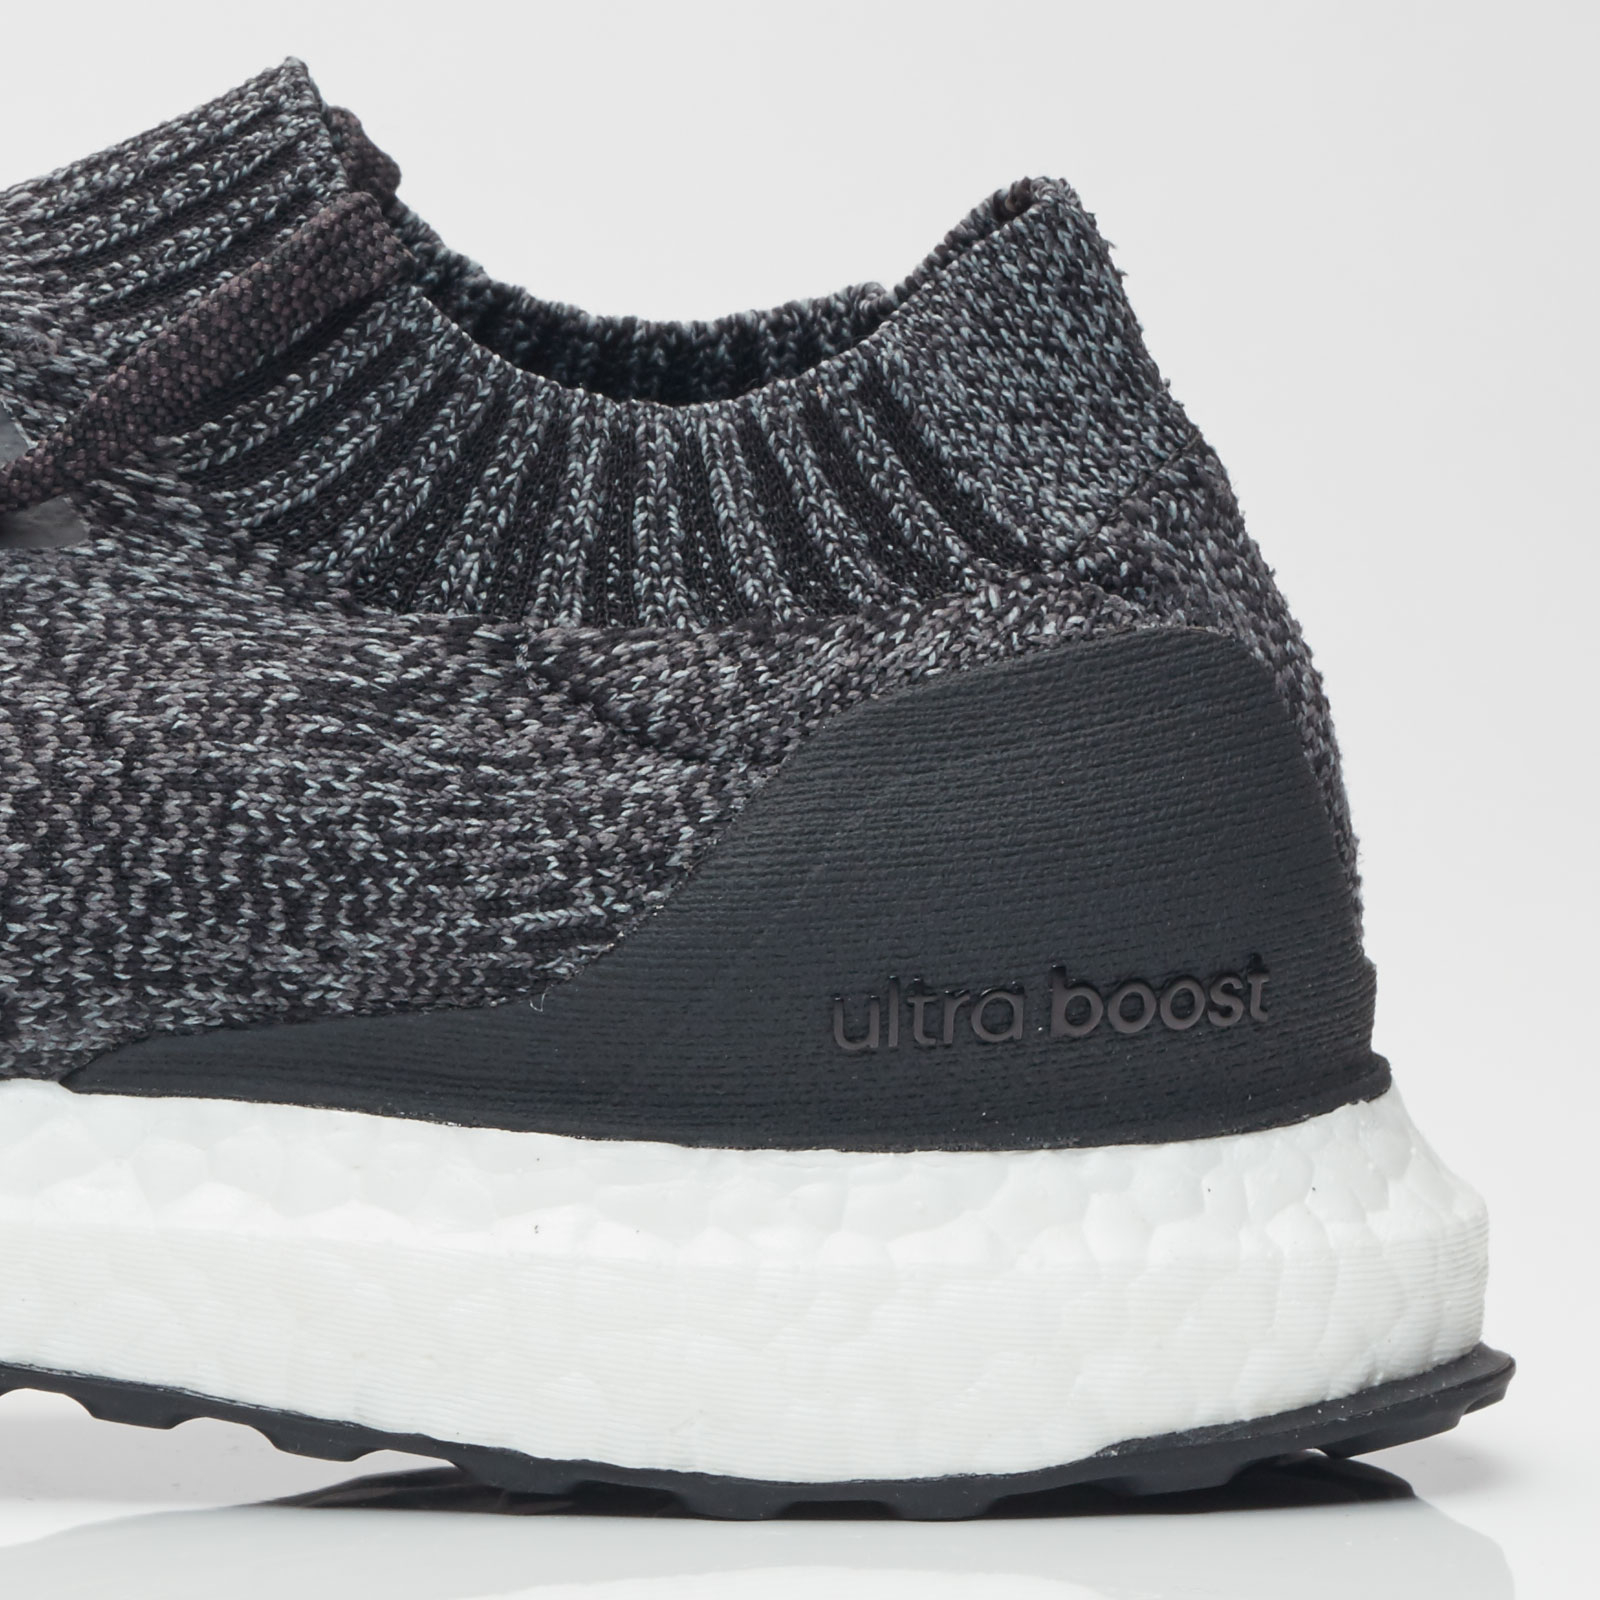 adidas UltraBOOST Uncaged - By2551